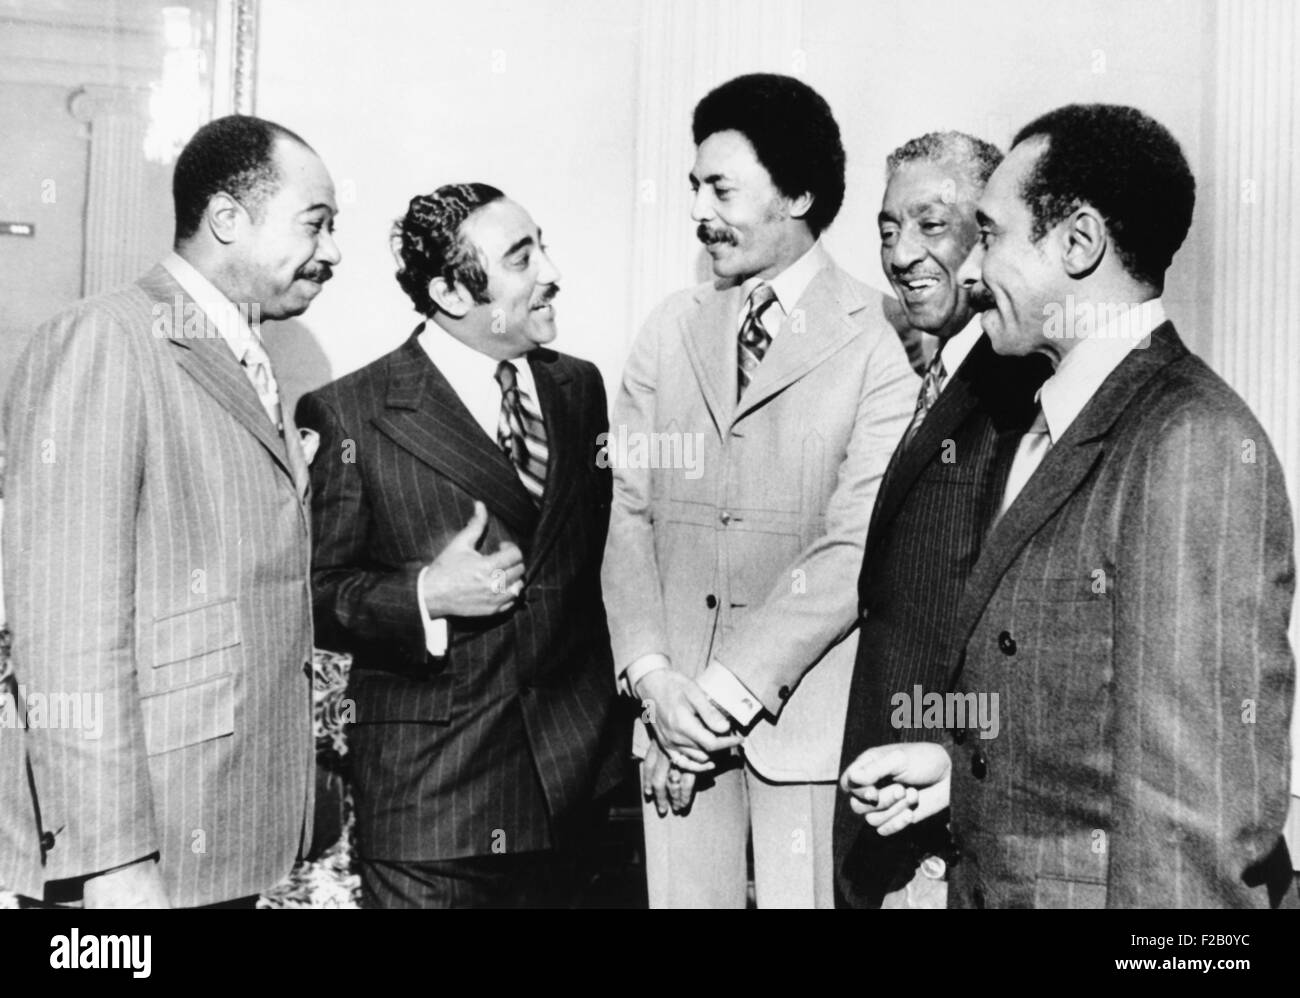 Five new African American members of Congress, Jan. 21, 1971. L-R: George Collins, Illinois; Charles Rangel, New - Stock Image